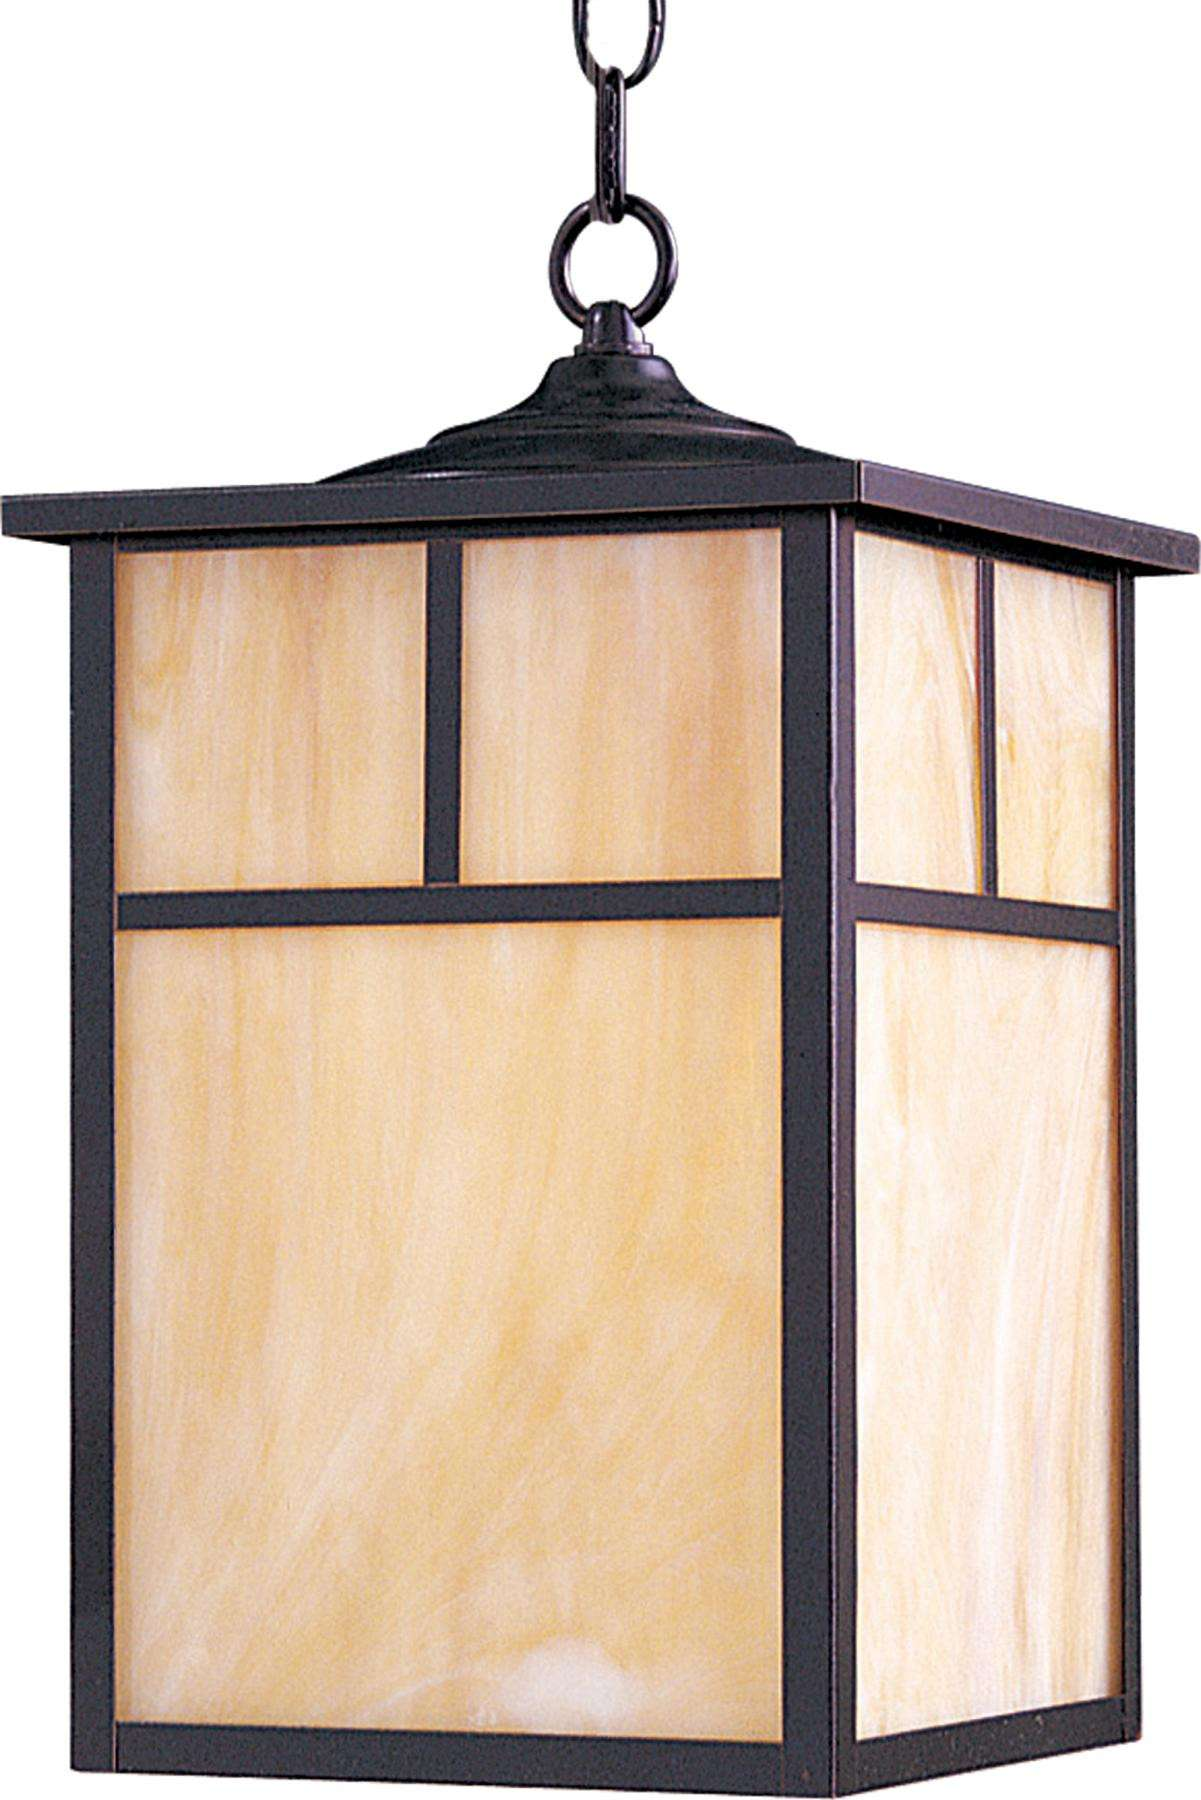 Maxim 4058HOBU Coldwater 1-Light Outdoor Hanging Lantern in Burnished with Honey glass.